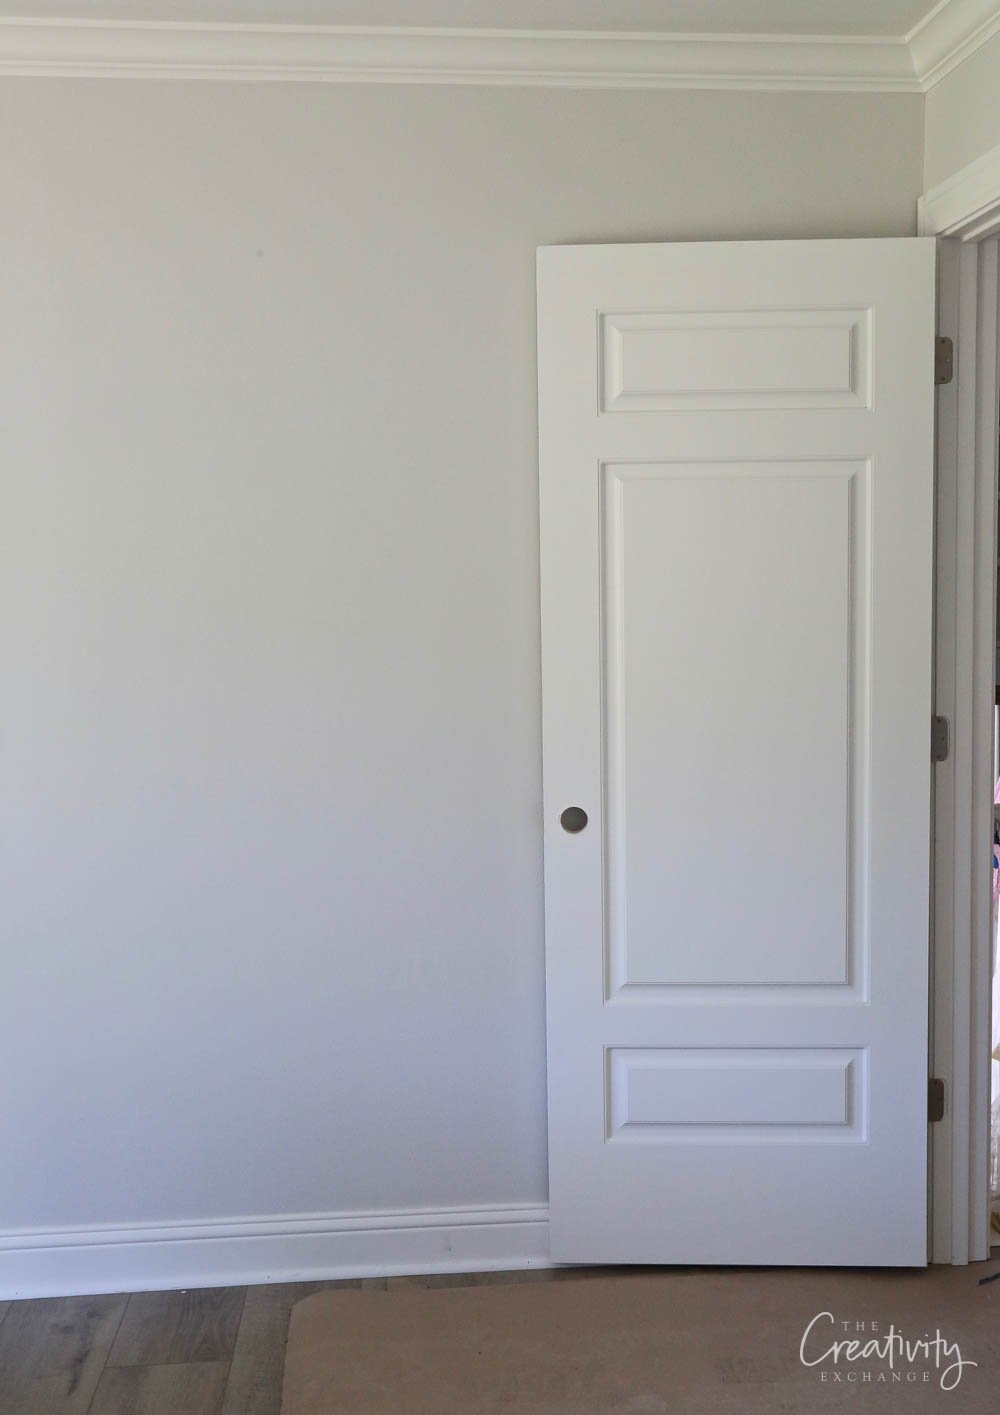 Wall color is Sherwin Williams Drift of Mist